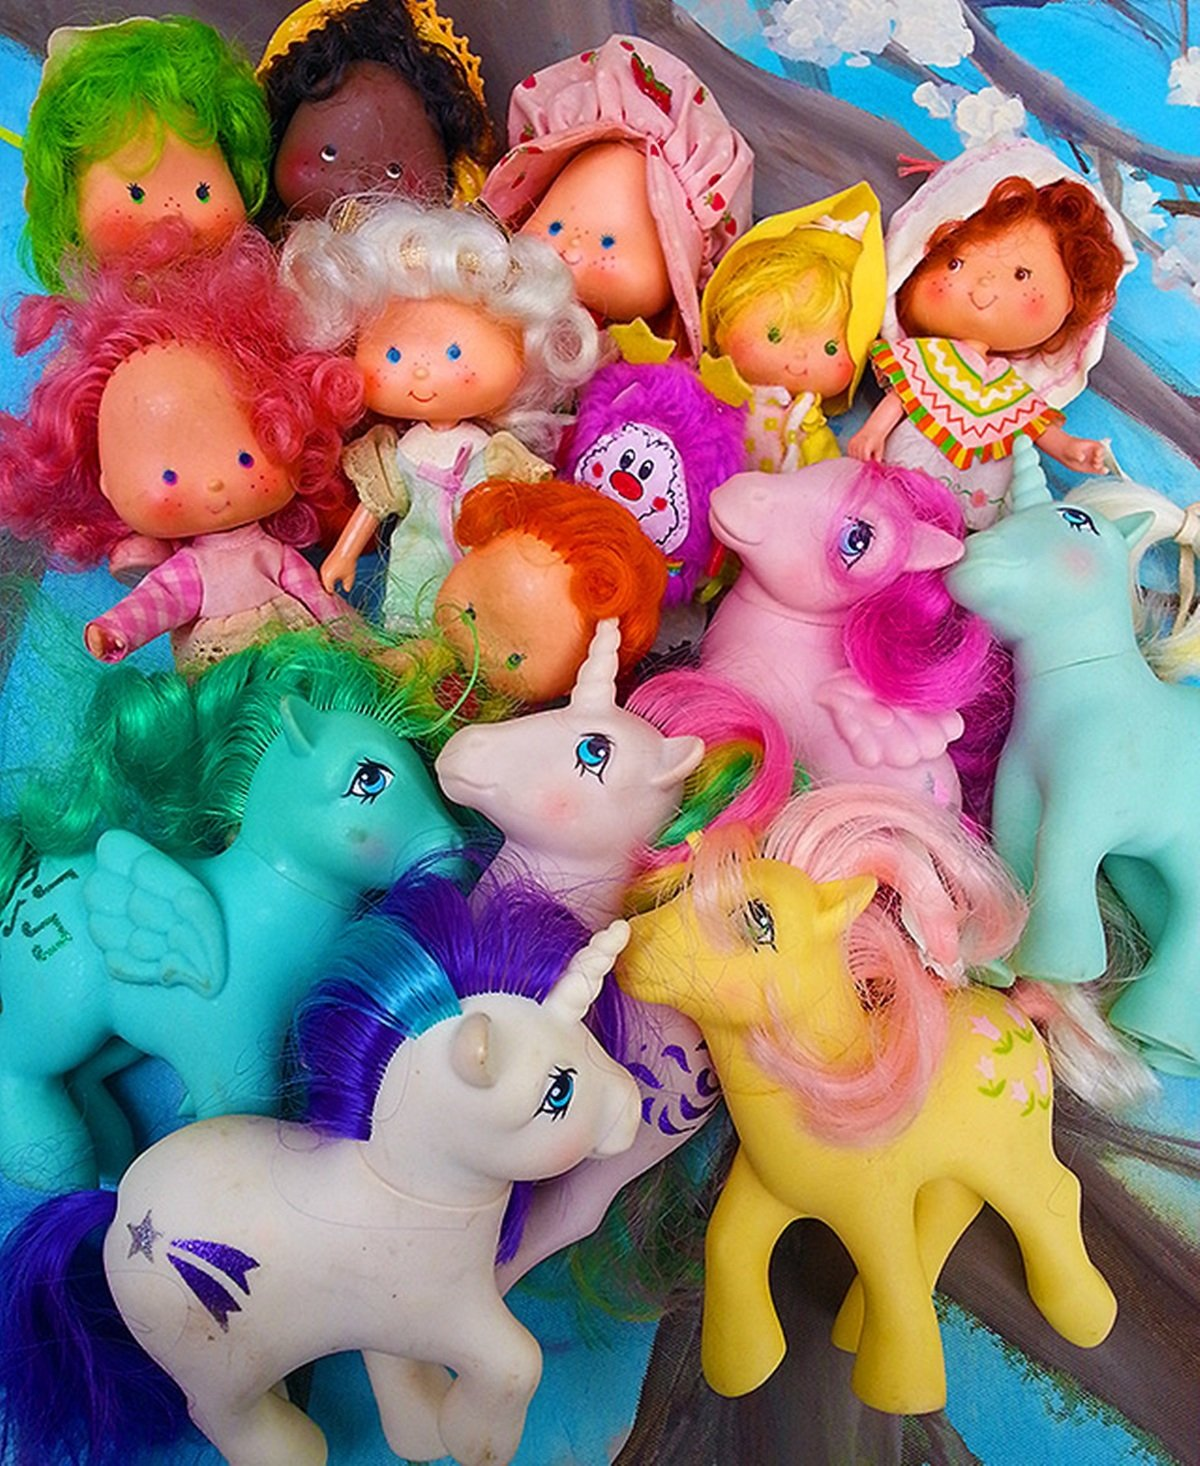 INTRO1 3 12 Toys All 80s Girls Wanted Santa To Leave Them!